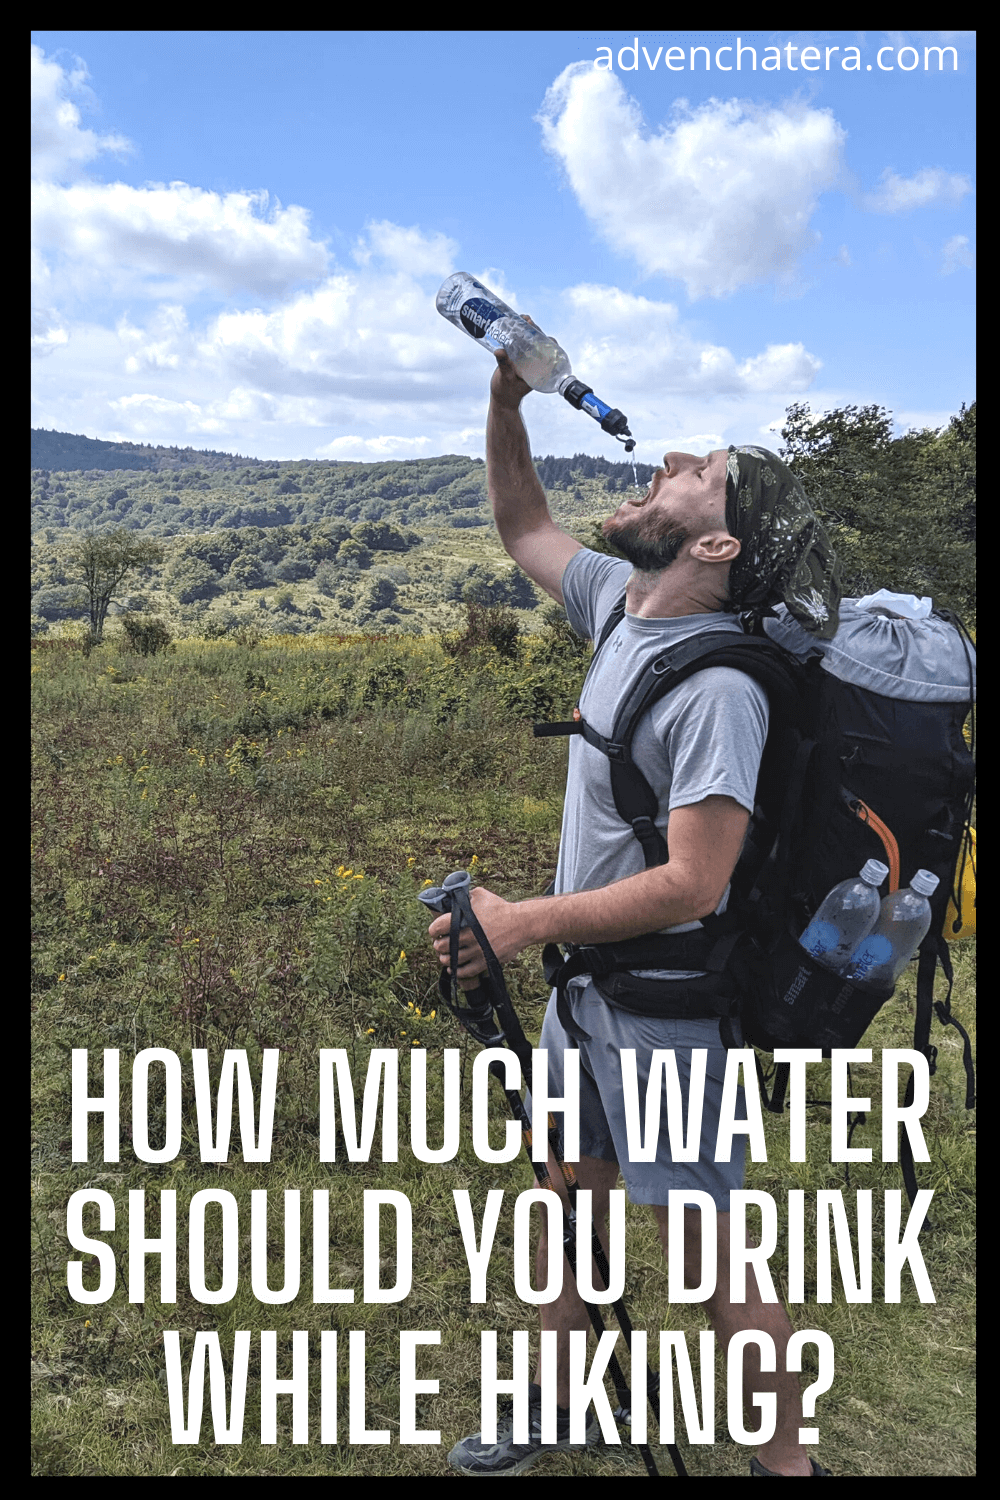 If you've ever wondered how much water you need to take for a hike, this blog post can help you out. We all know we need to drink water when we exercise, but do we really know how much? How thirsty are we going to get on a hike? When are we dehydrated? This blog post tells all! Make sure you read it before your next hike | Hiking Tips | Hiking Training | Hiking Water Bottle | Water | Backpacking Tips #hikingtips #hiking #backpacking via @advenchatera via @advenchatera